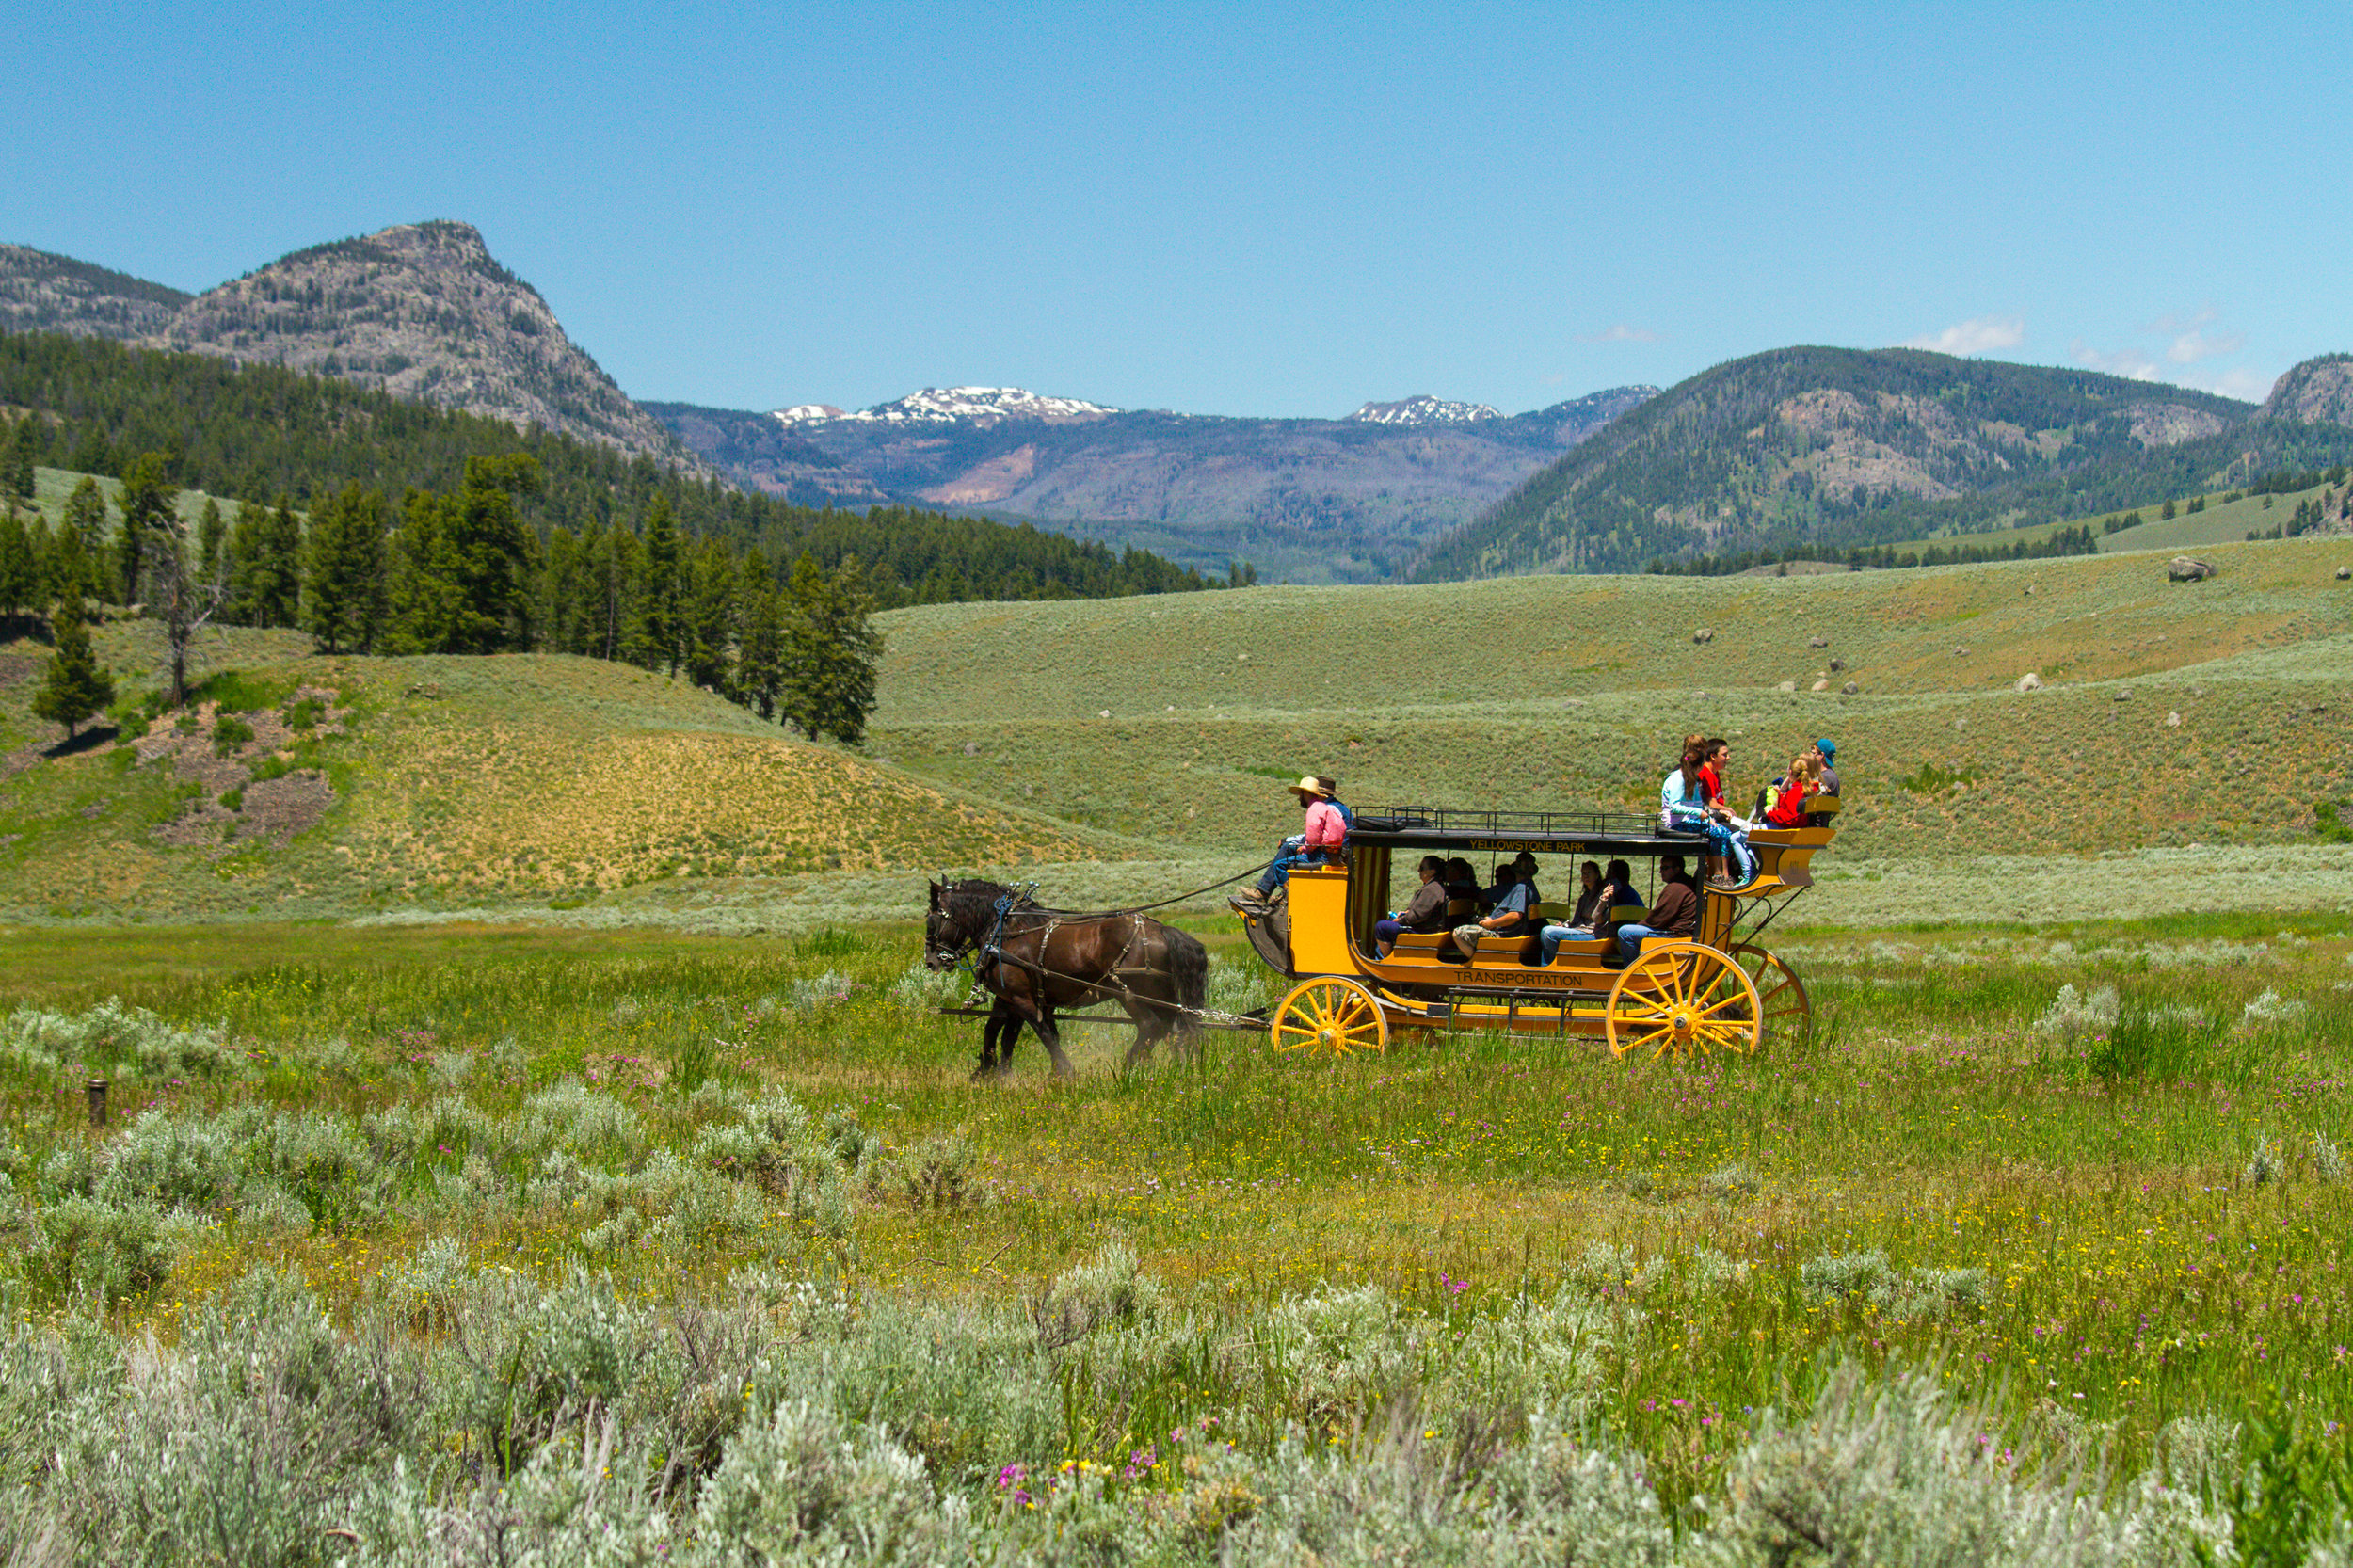 Lamar Valley, Yellowstone National Park, Image # 5087